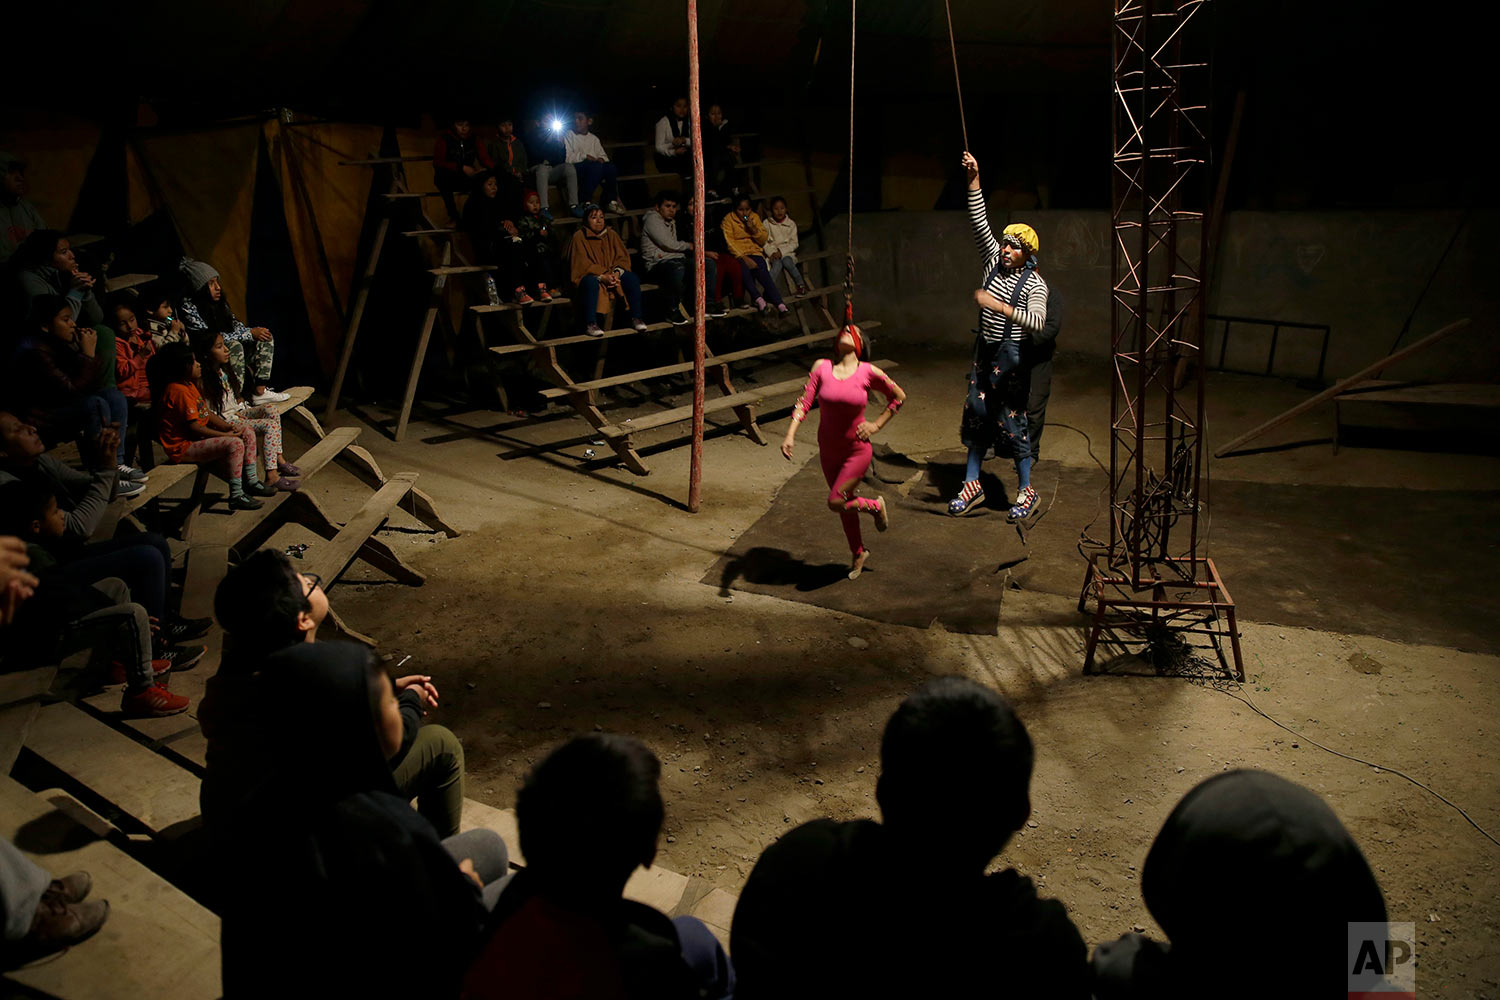 """""""Vaguito"""" the clown assists acrobat Brenda Aguila as she prepares to hang from her neck, as spectators watch the Tony Perejil circus, set up in the shanty town of Puente Piedra on the outskirts of Lima, Peru, July 8, 2018. The circus owner, Jose Alvarez, said he remembers happier times in the 1980s, when his father filled their circus tent with people even though Peru was in the midst of an economic crisis and a war raged between the state and Sendero Luminoso guerrillas. (AP Photo/Martin Mejia)"""